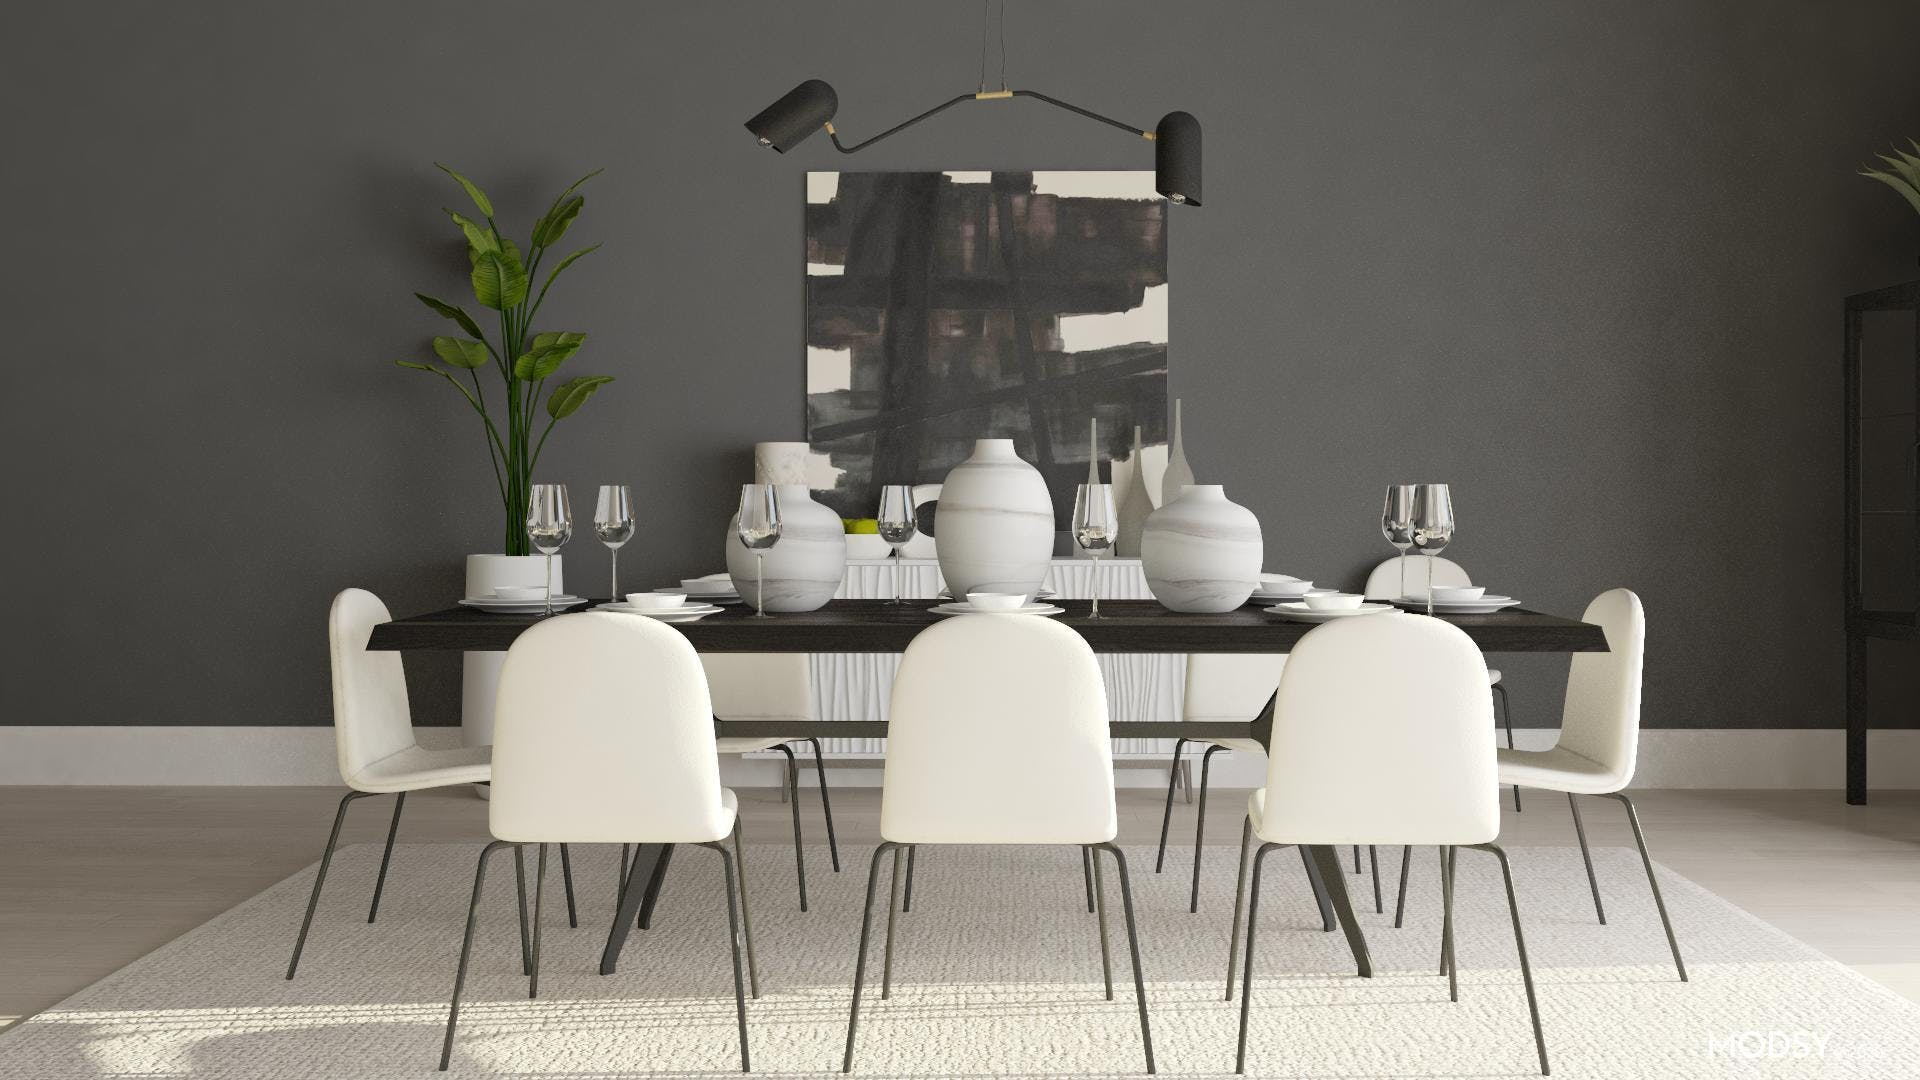 Less is More in a Minimalist Dining Room